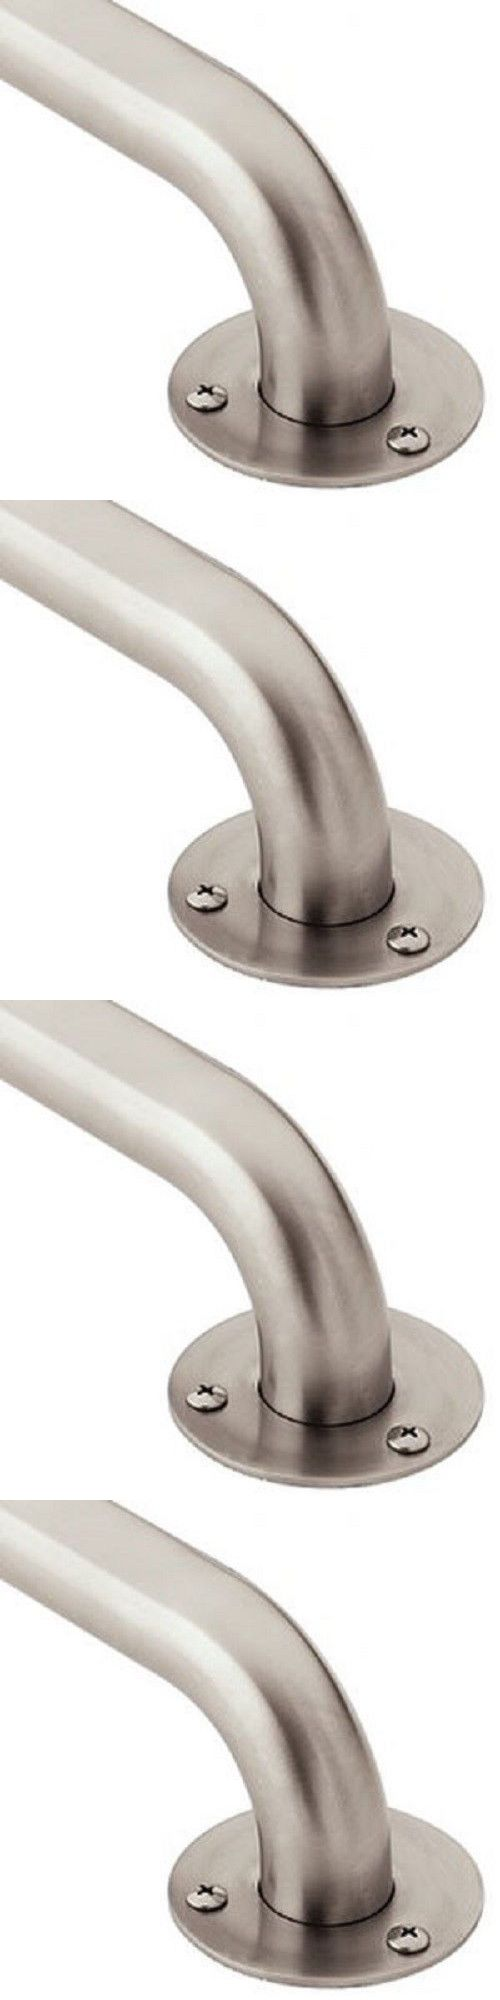 Other Accessibility Fixtures: Moen Stainless Steel Ss Bathroom Safety Grab Bars 12 18 24 36 42 Inch BUY IT NOW ONLY: $32.73